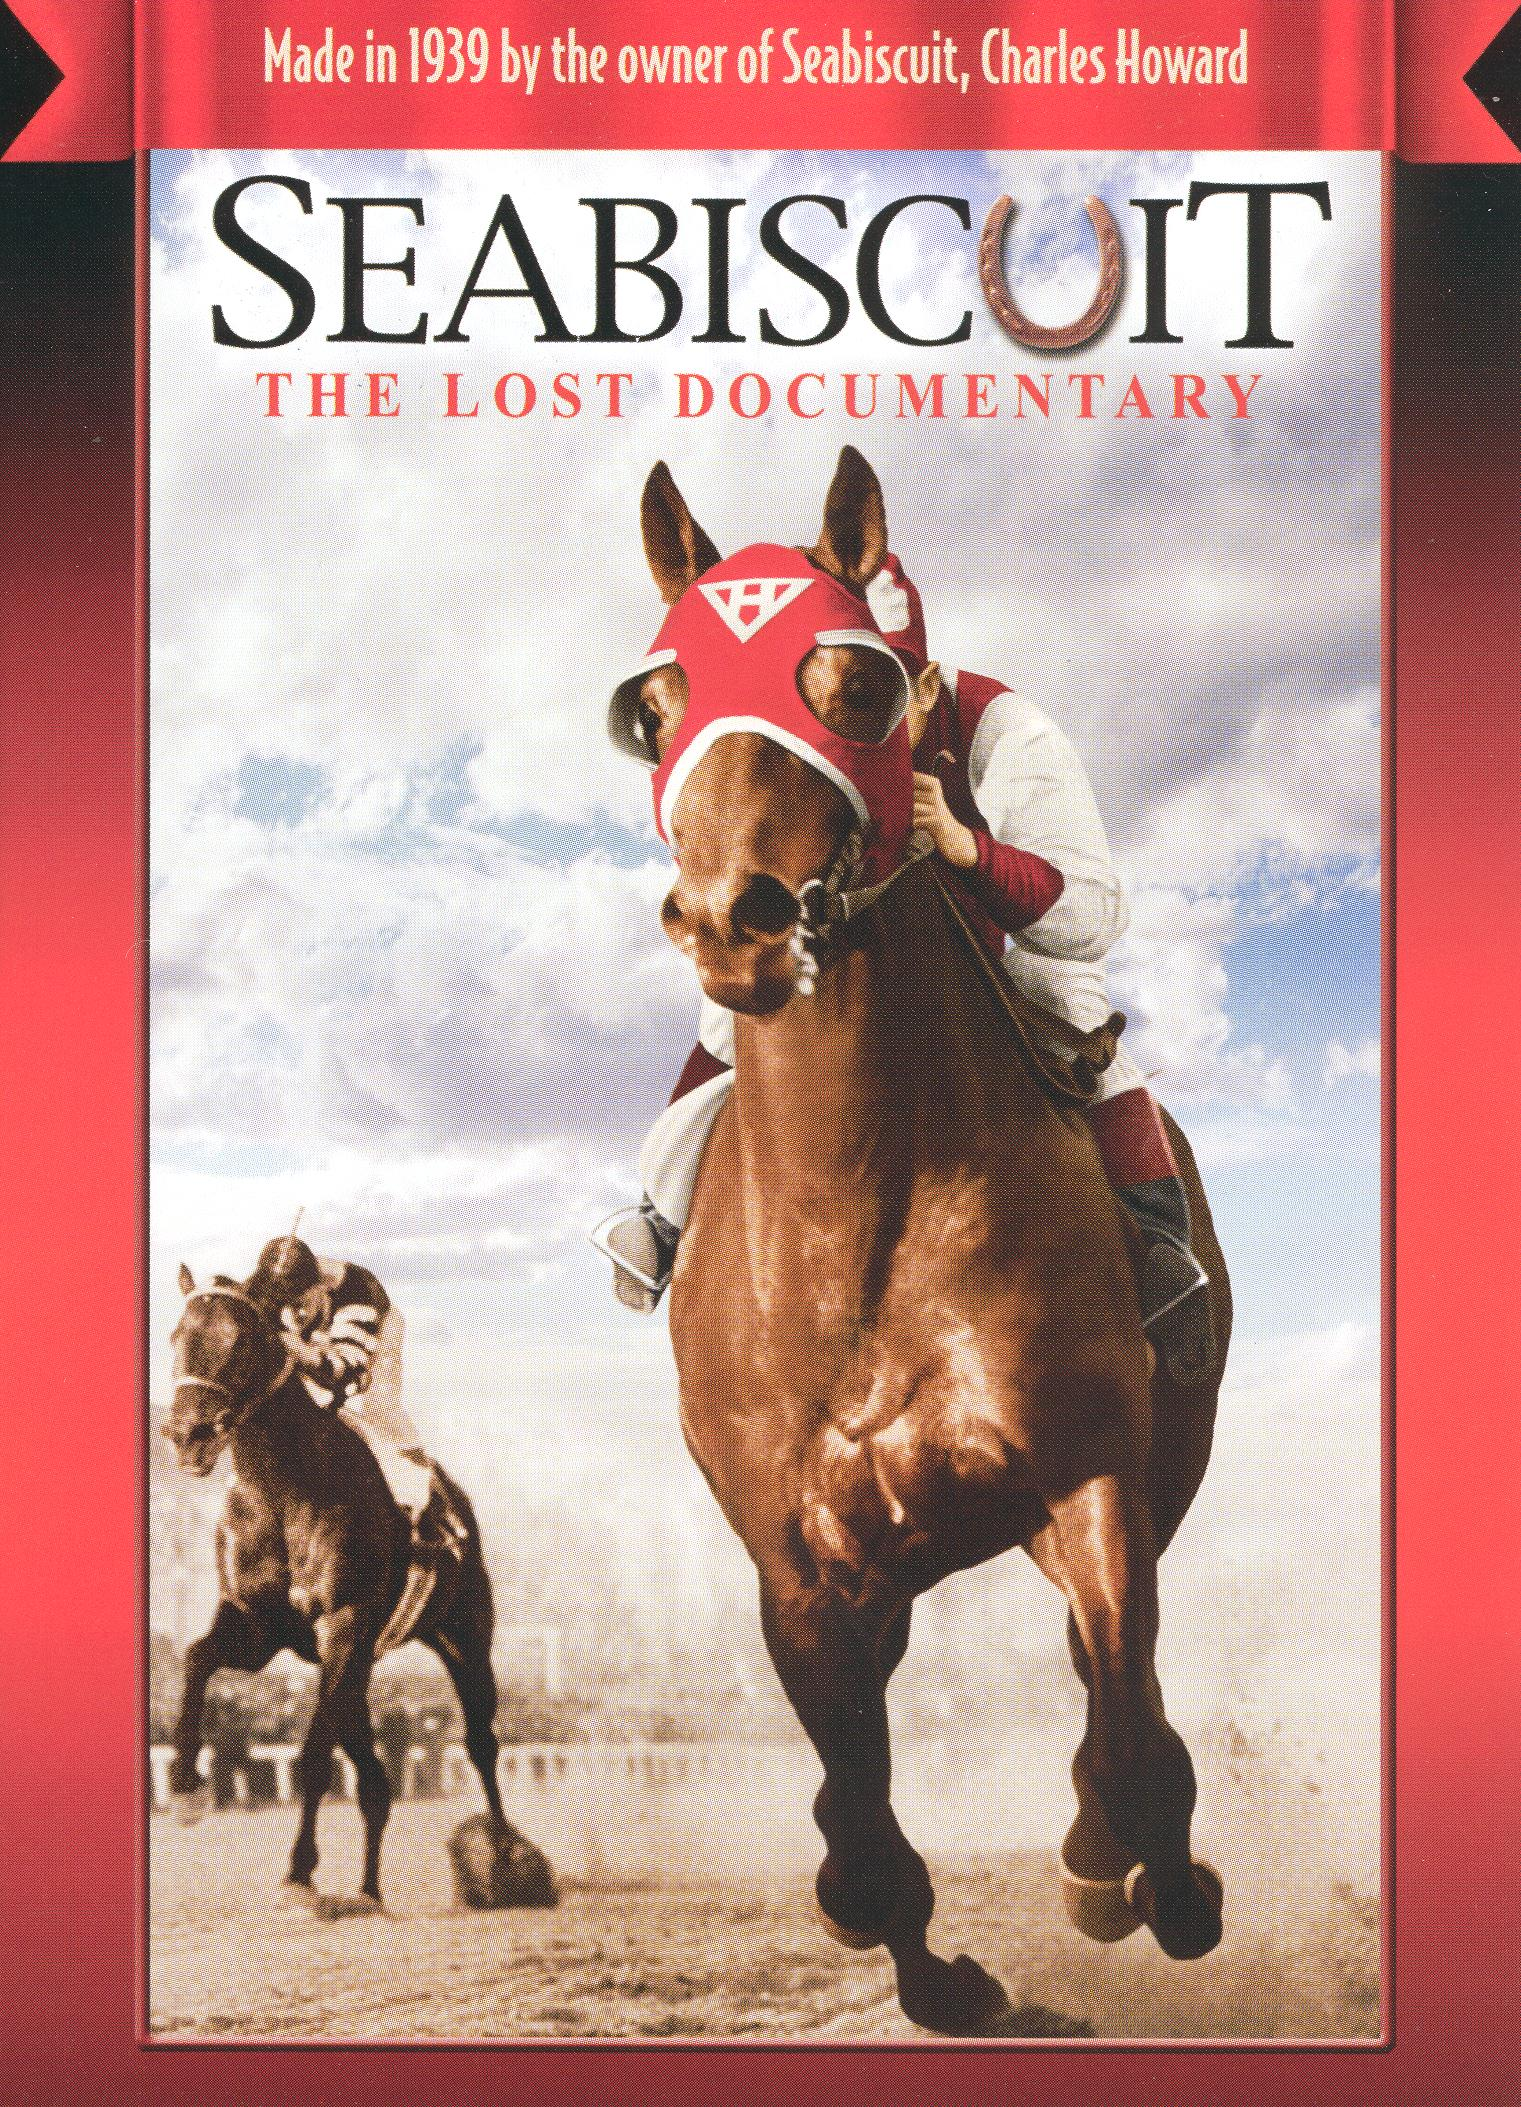 seabiscuit movie summary Our reading guide for seabiscuit by laura hillenbrand includes a book club discussion guide, book review, plot summary-synopsis and author bio.